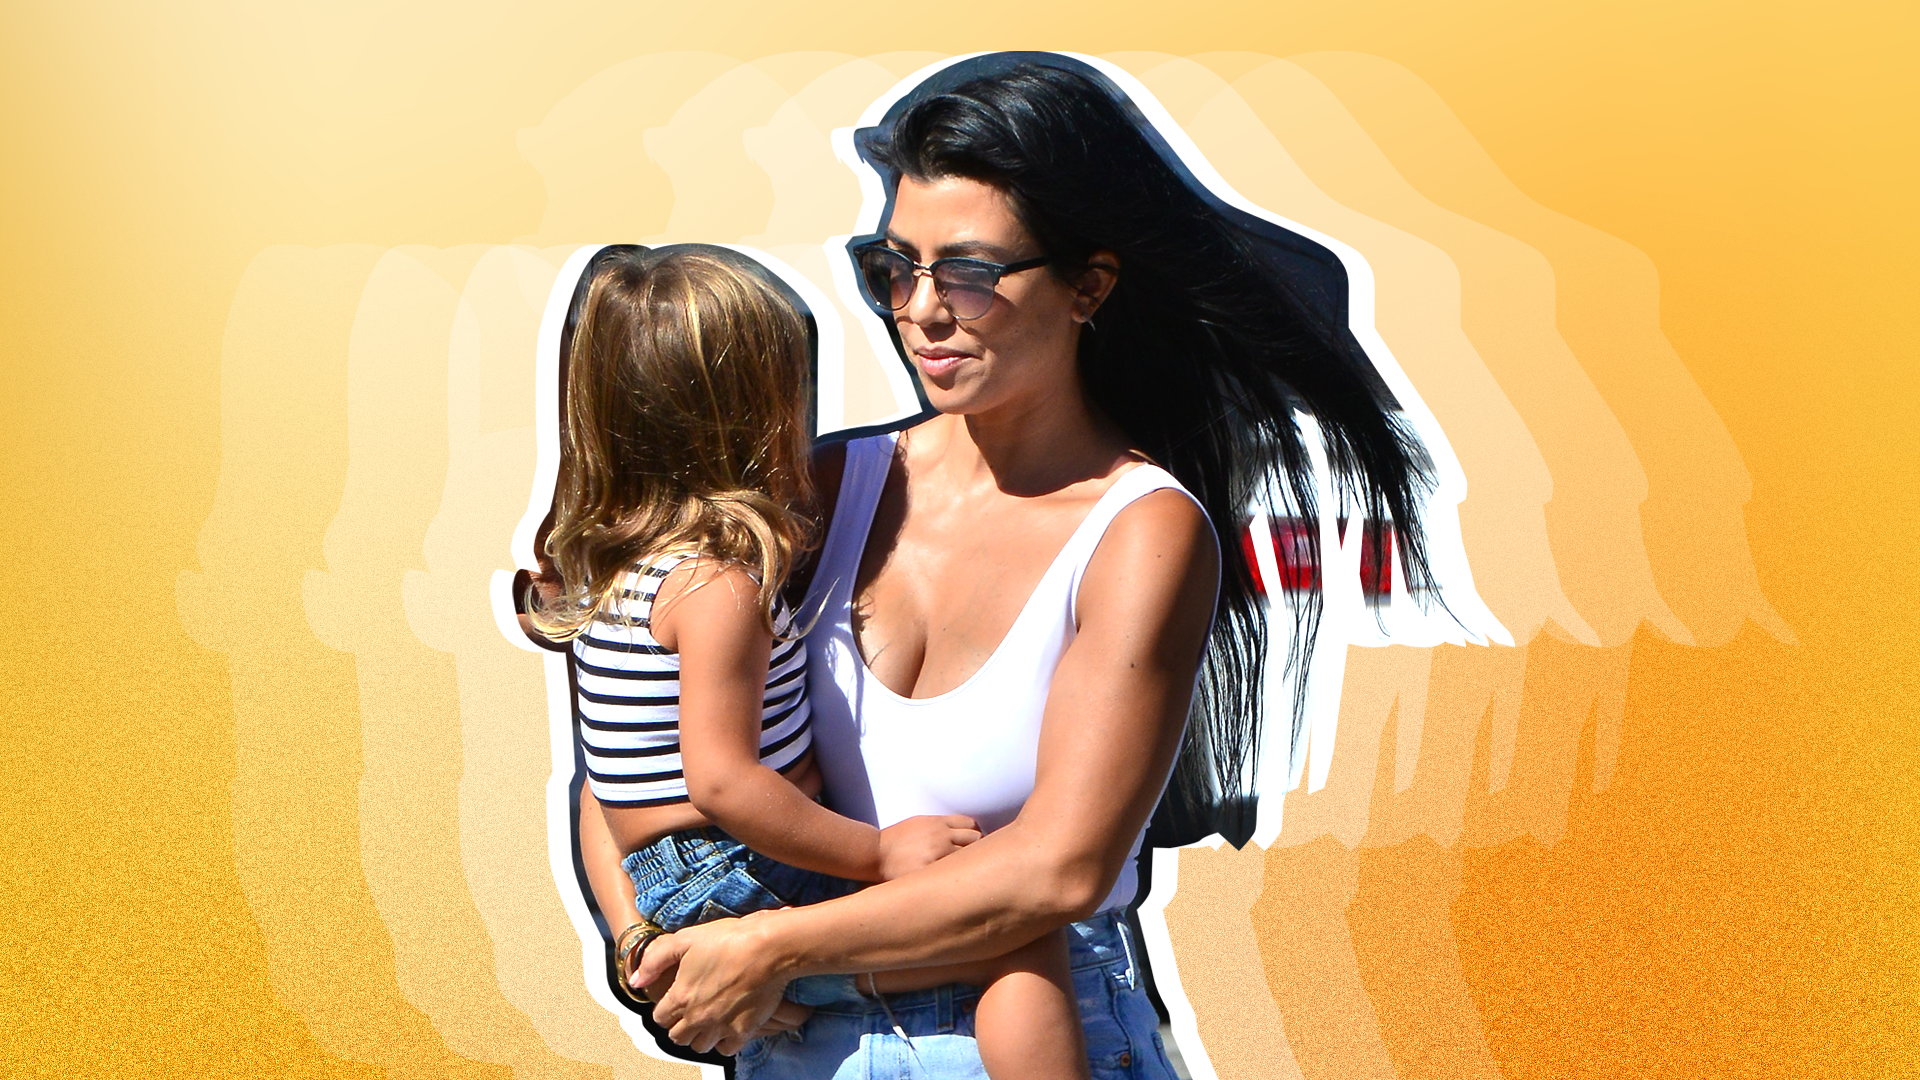 12 Healthy Parenting Tips We Can Learn from Kourtney Kardashian